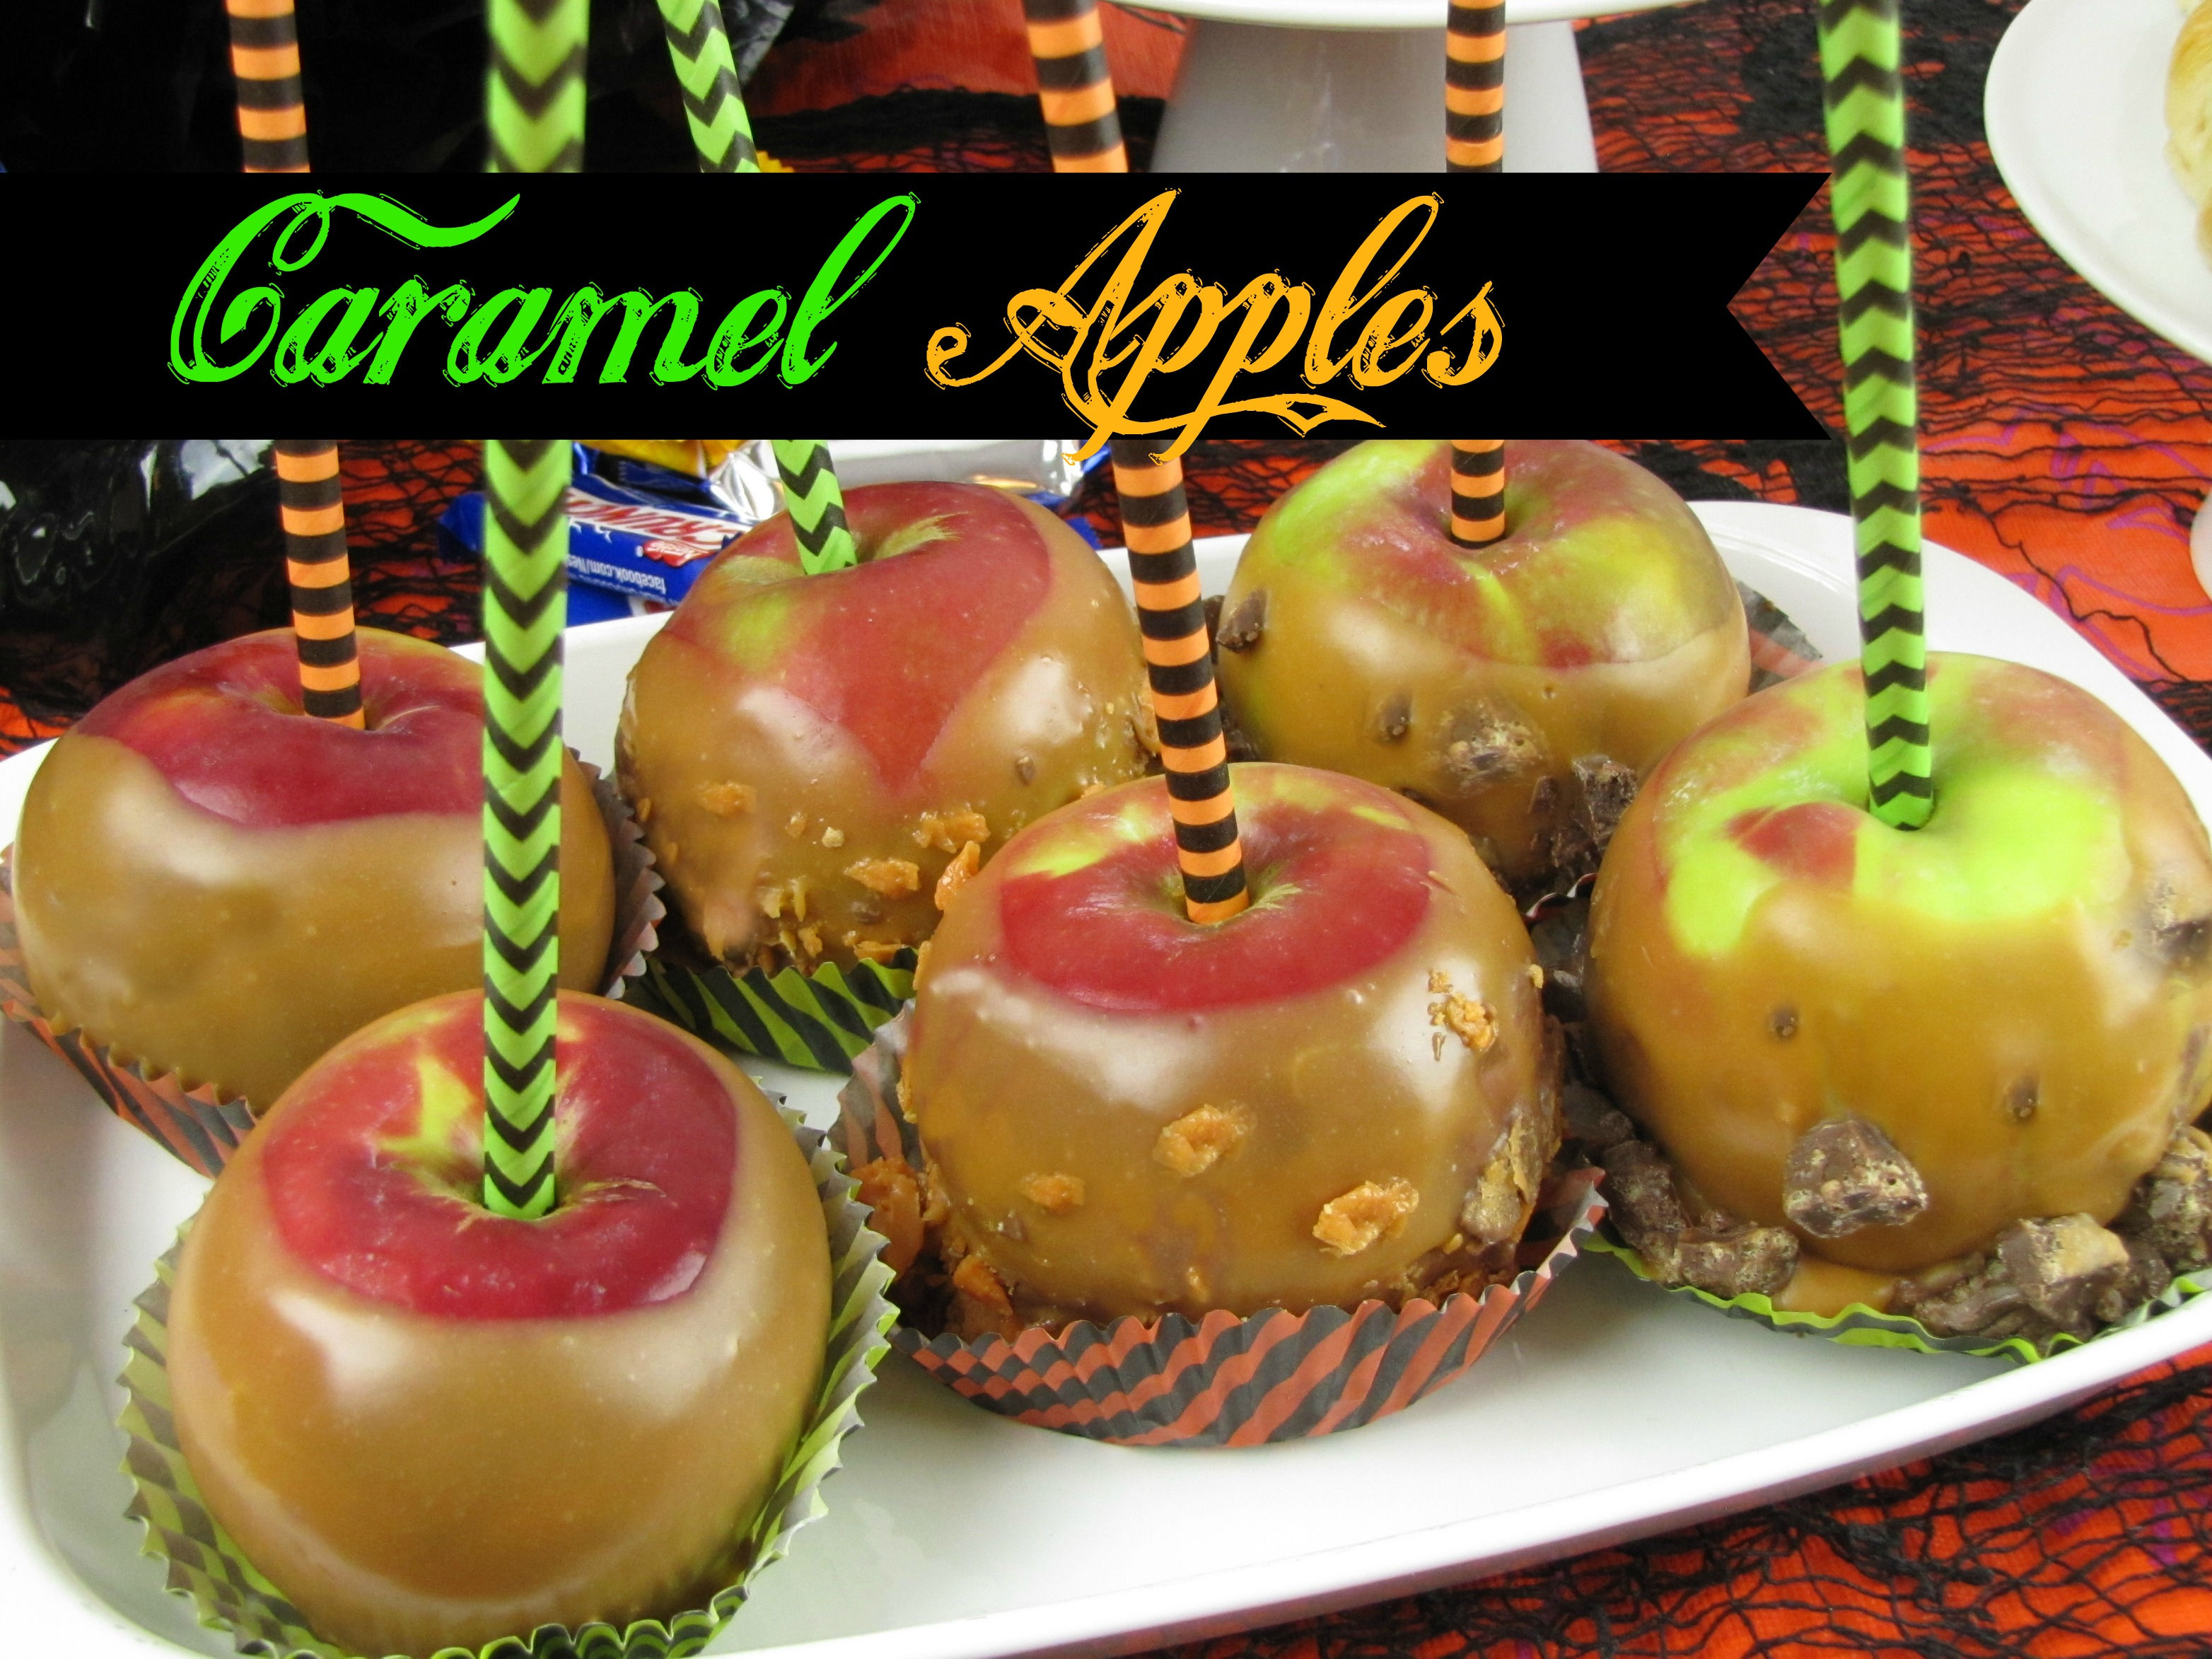 Caramel apples for halloween frugal upstate for Caramel apple recipes for halloween